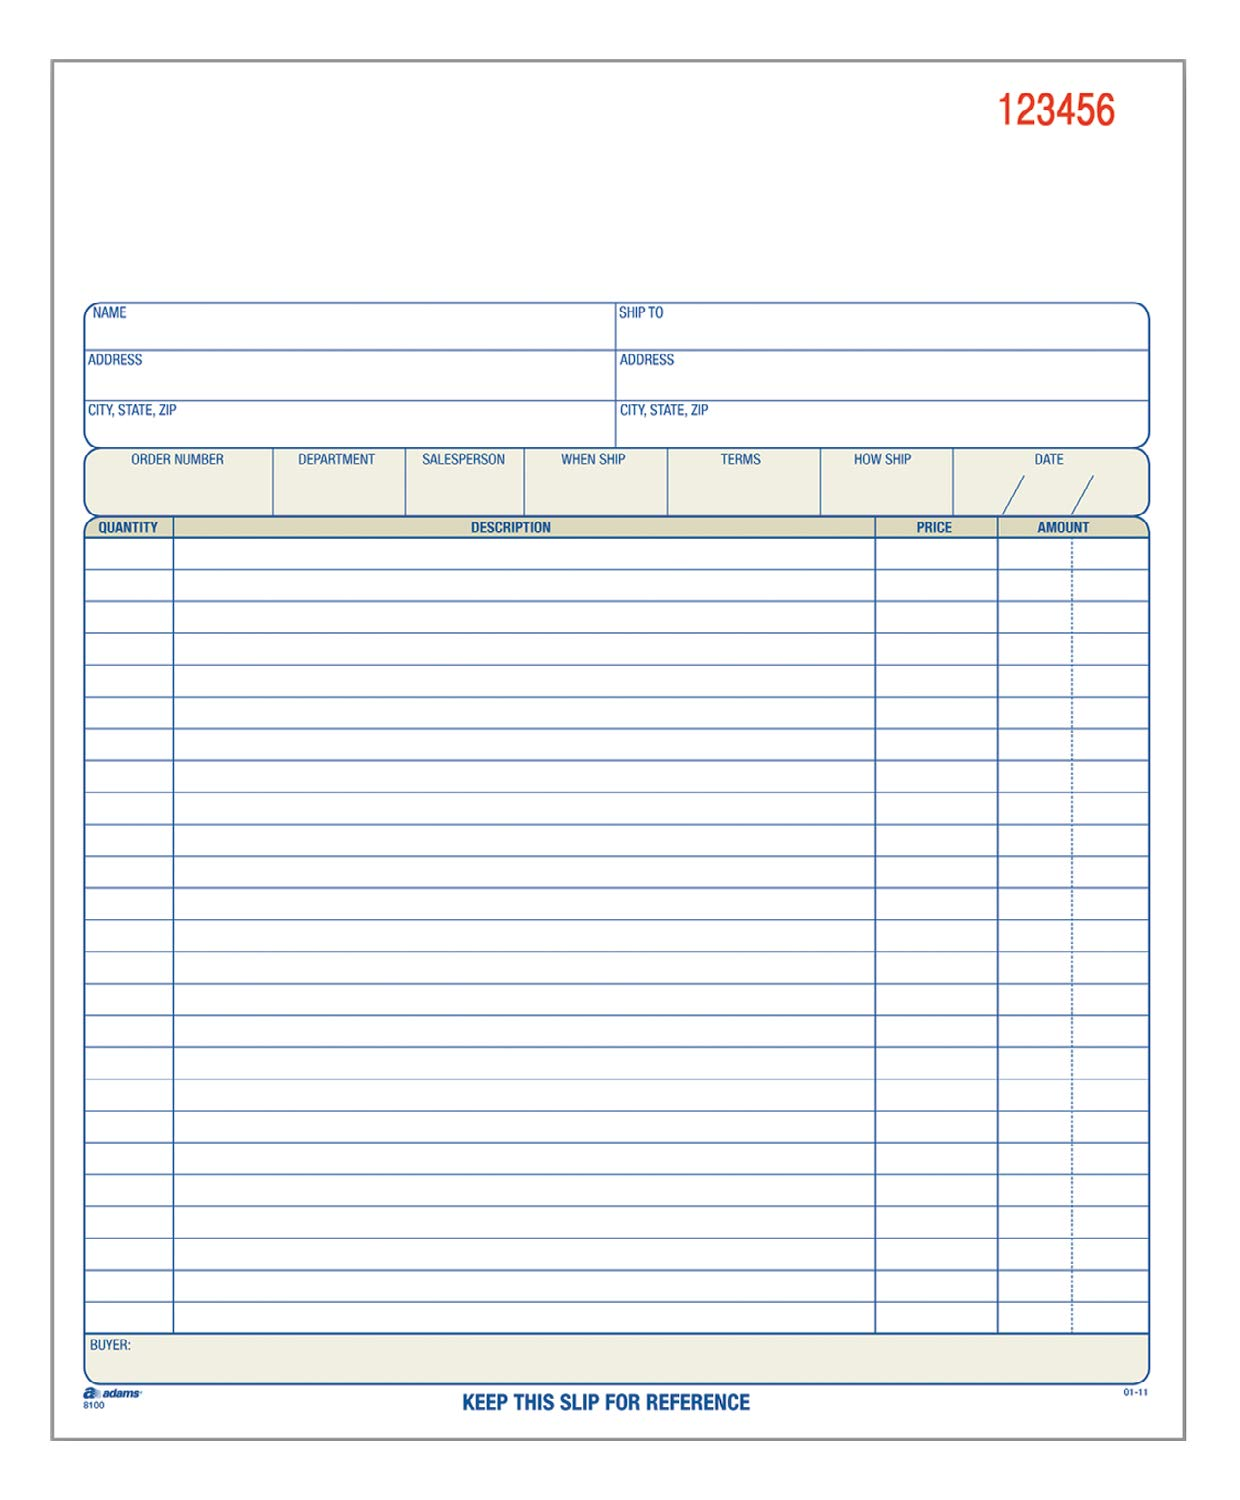 Adams Order Book, 8.38 x 10.69 Inch, 3-Part, Carbonless, 50 Sets, White, Canary, Pink (TC8100)